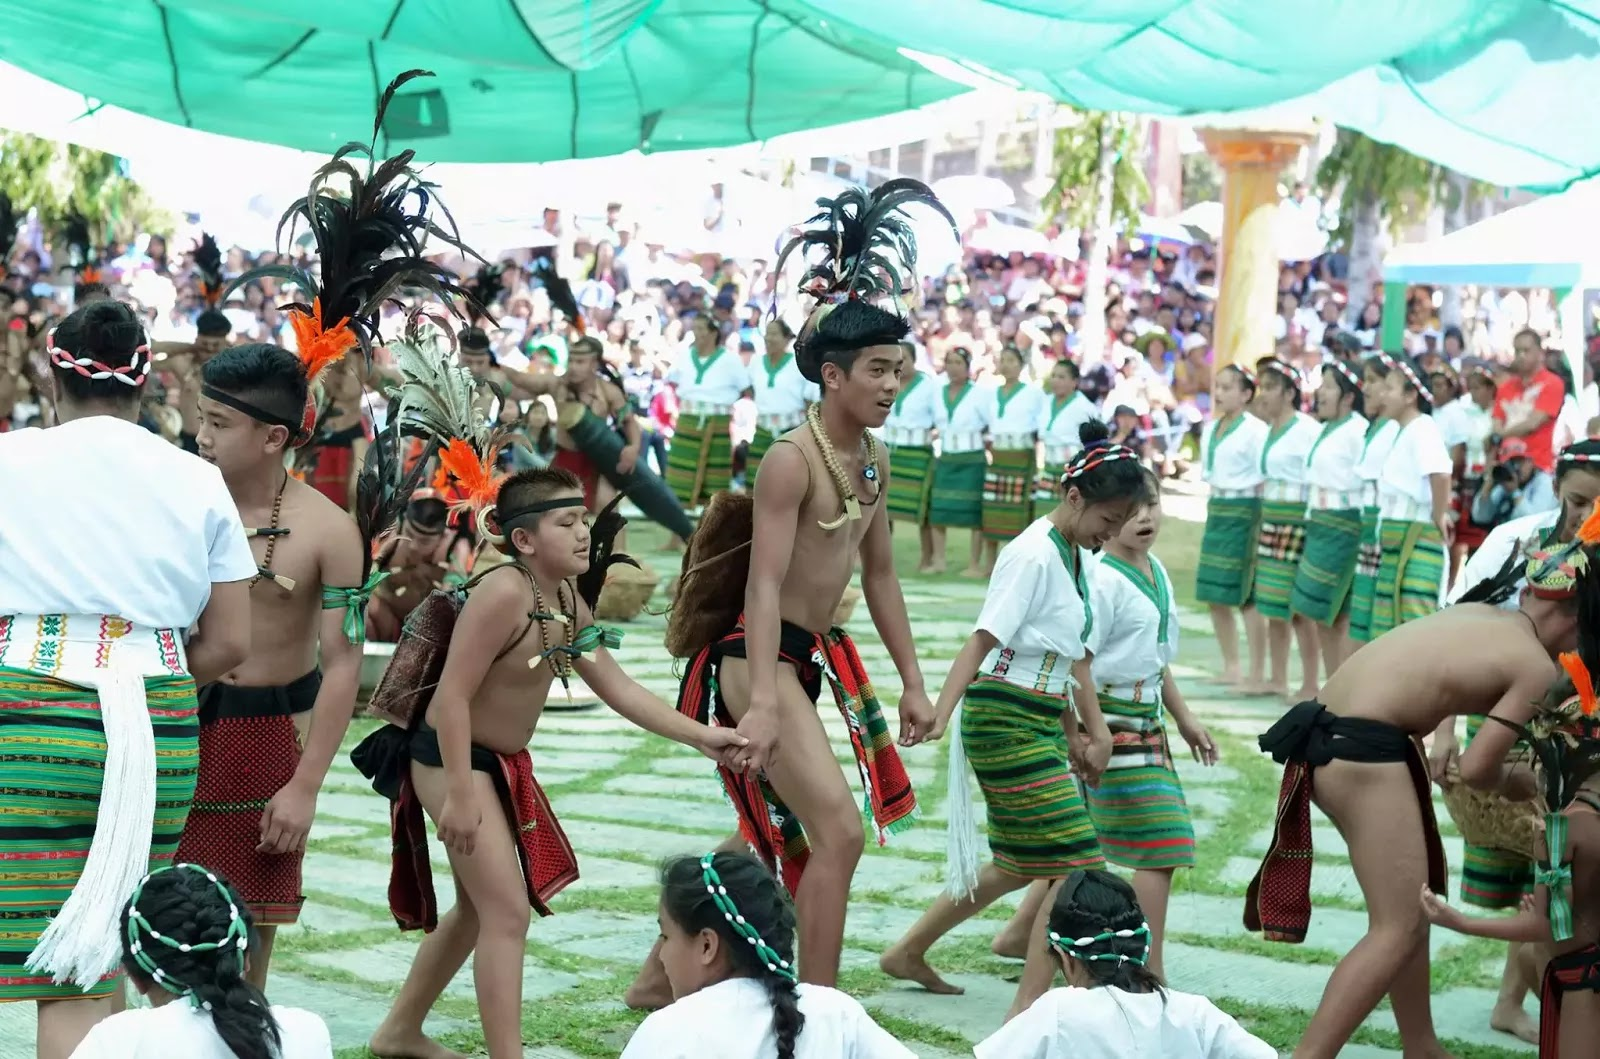 Ethno-Indigenous Community Brothers and Sisters 13th Lang-Ay Festival Bontoc Mountain Province Cordillera Administrative Region Philippines